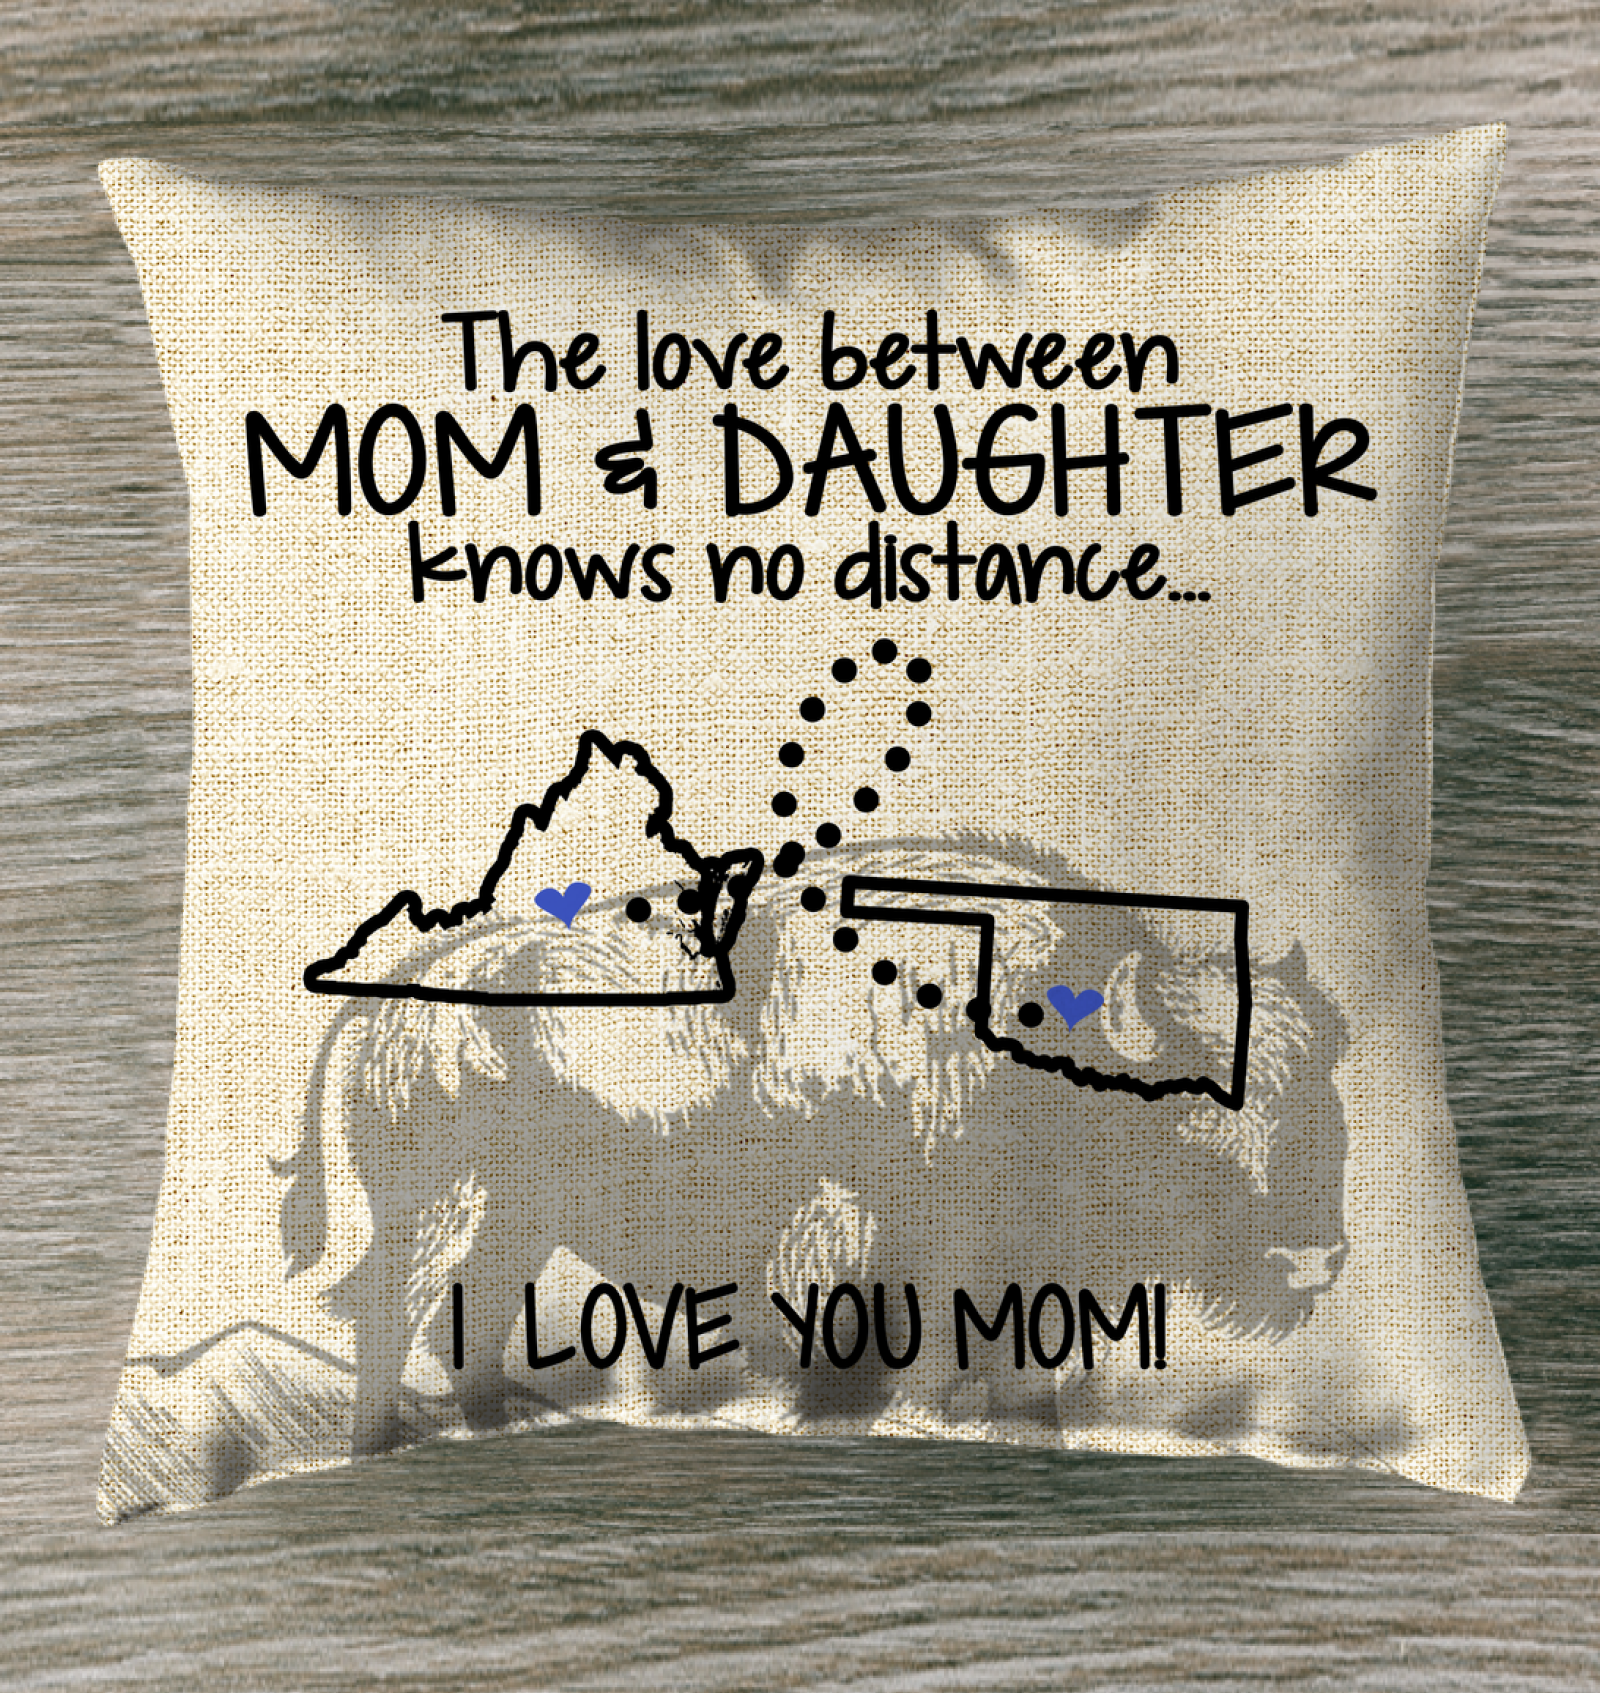 OKLAHOMA VIRGINIA THE LOVE MOM AND DAUGHTER KNOWS NO DISTANCE